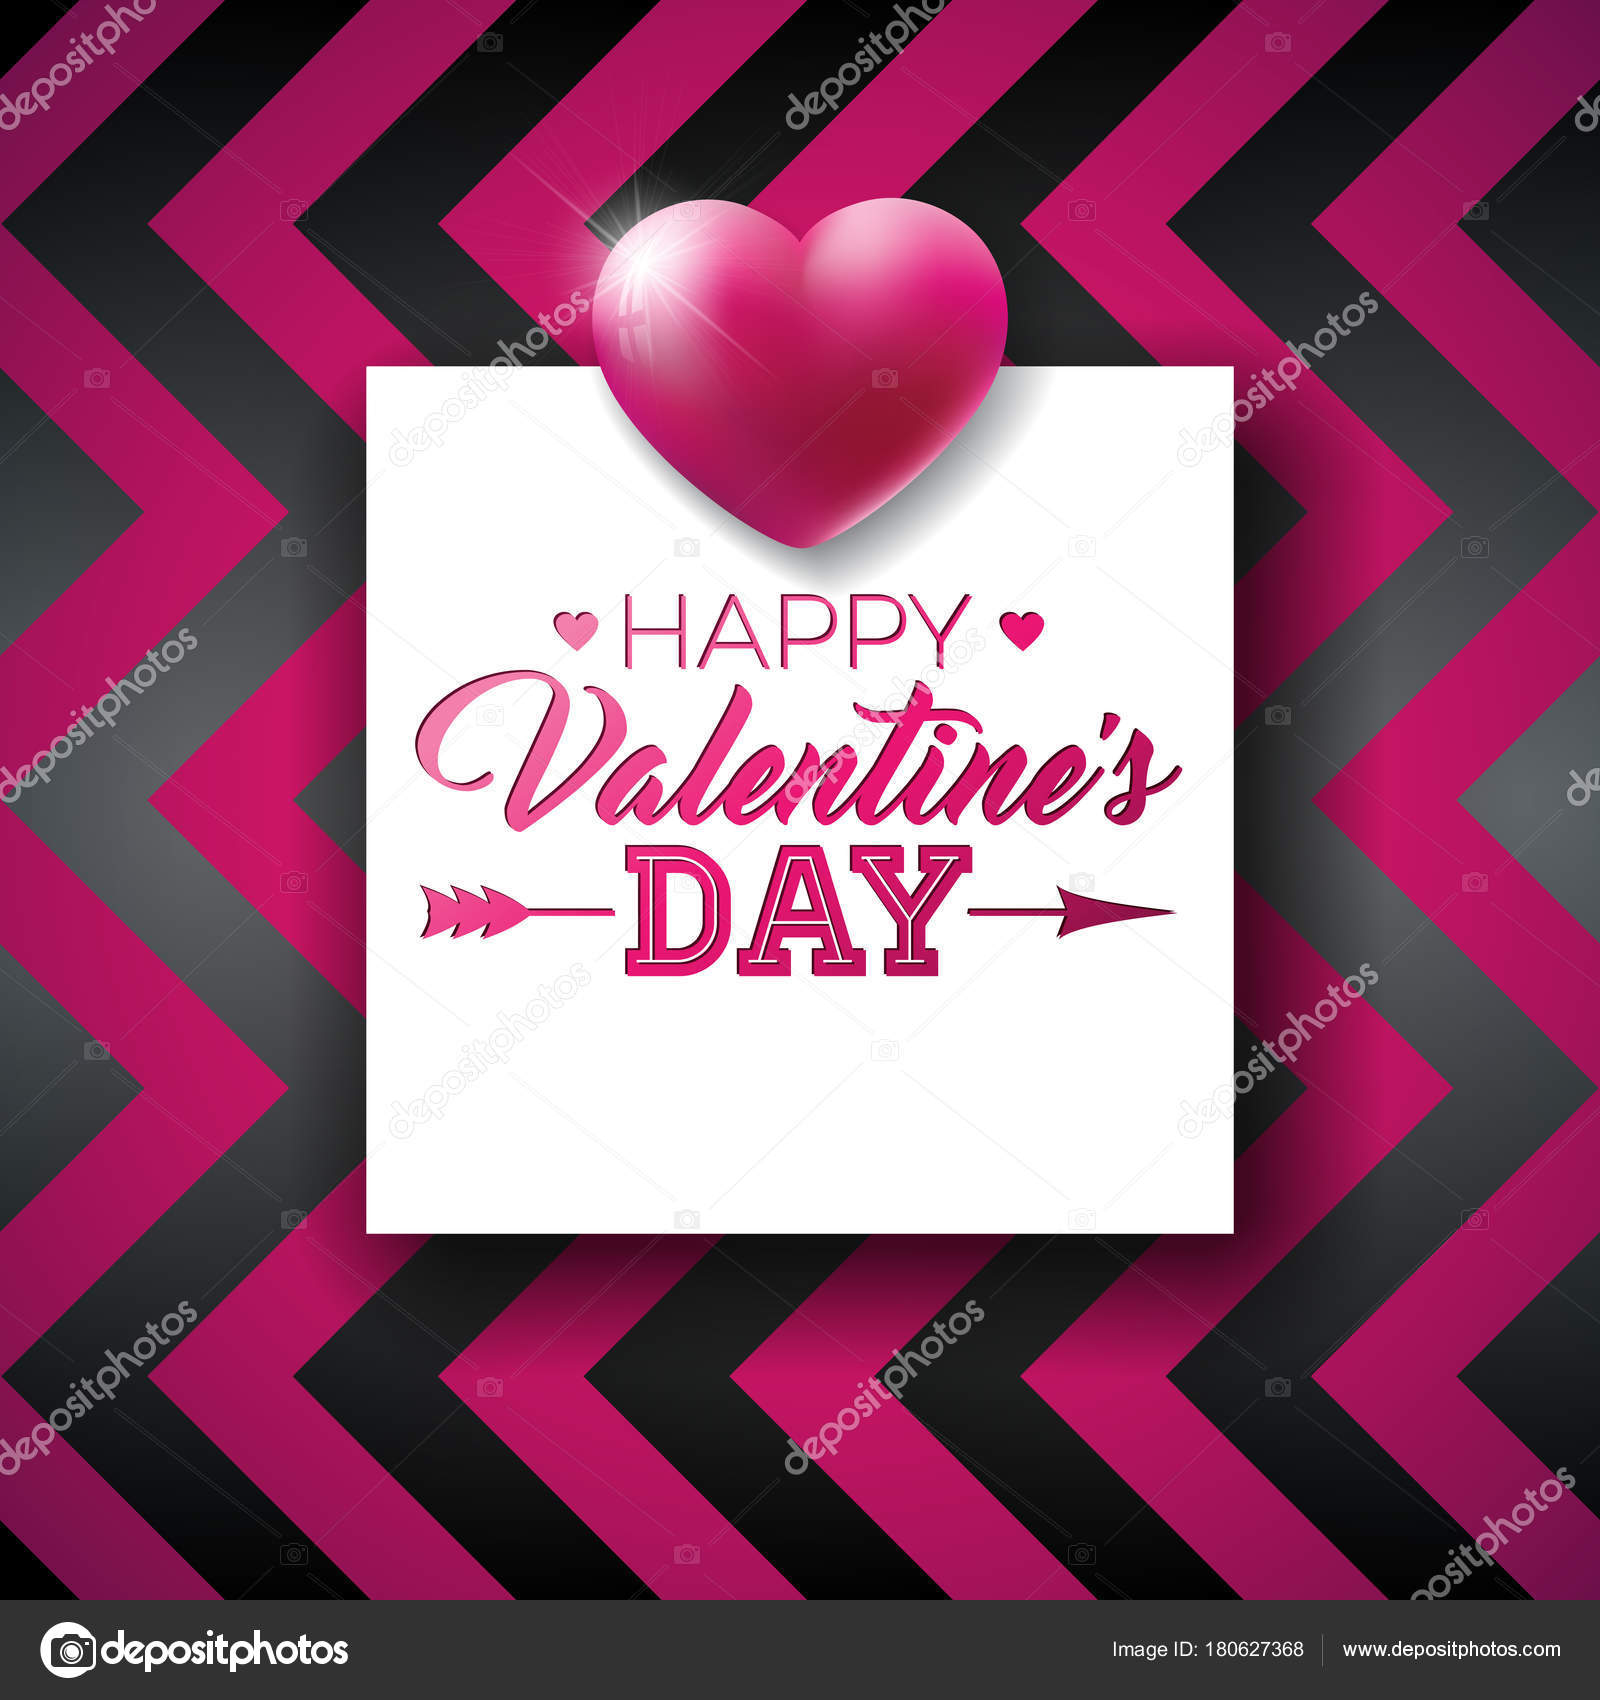 Happy valentines day design with shiny heart and typography letter happy valentines day design with shiny heart and typography letter on red background pattern premium stopboris Image collections